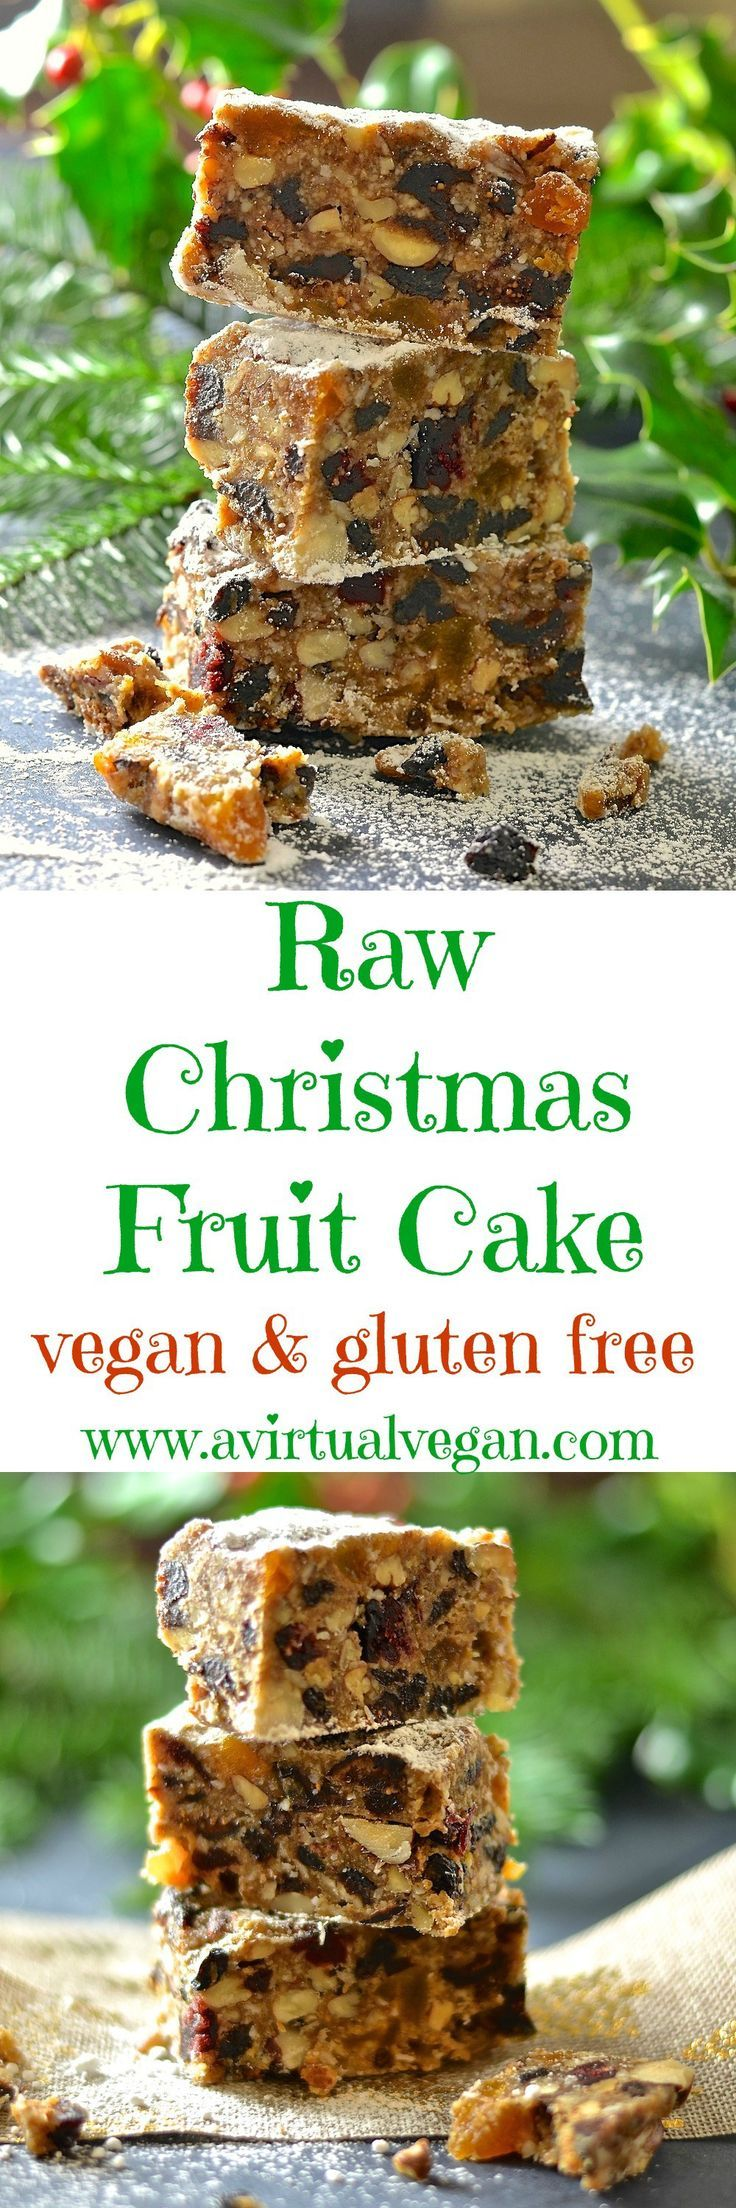 Festive fruit & nut flavours combine in this deliciously rich & moist Raw Christmas Fruit Cake. A fabulous alternative to traditional baked Christmas cake & so easy to make!